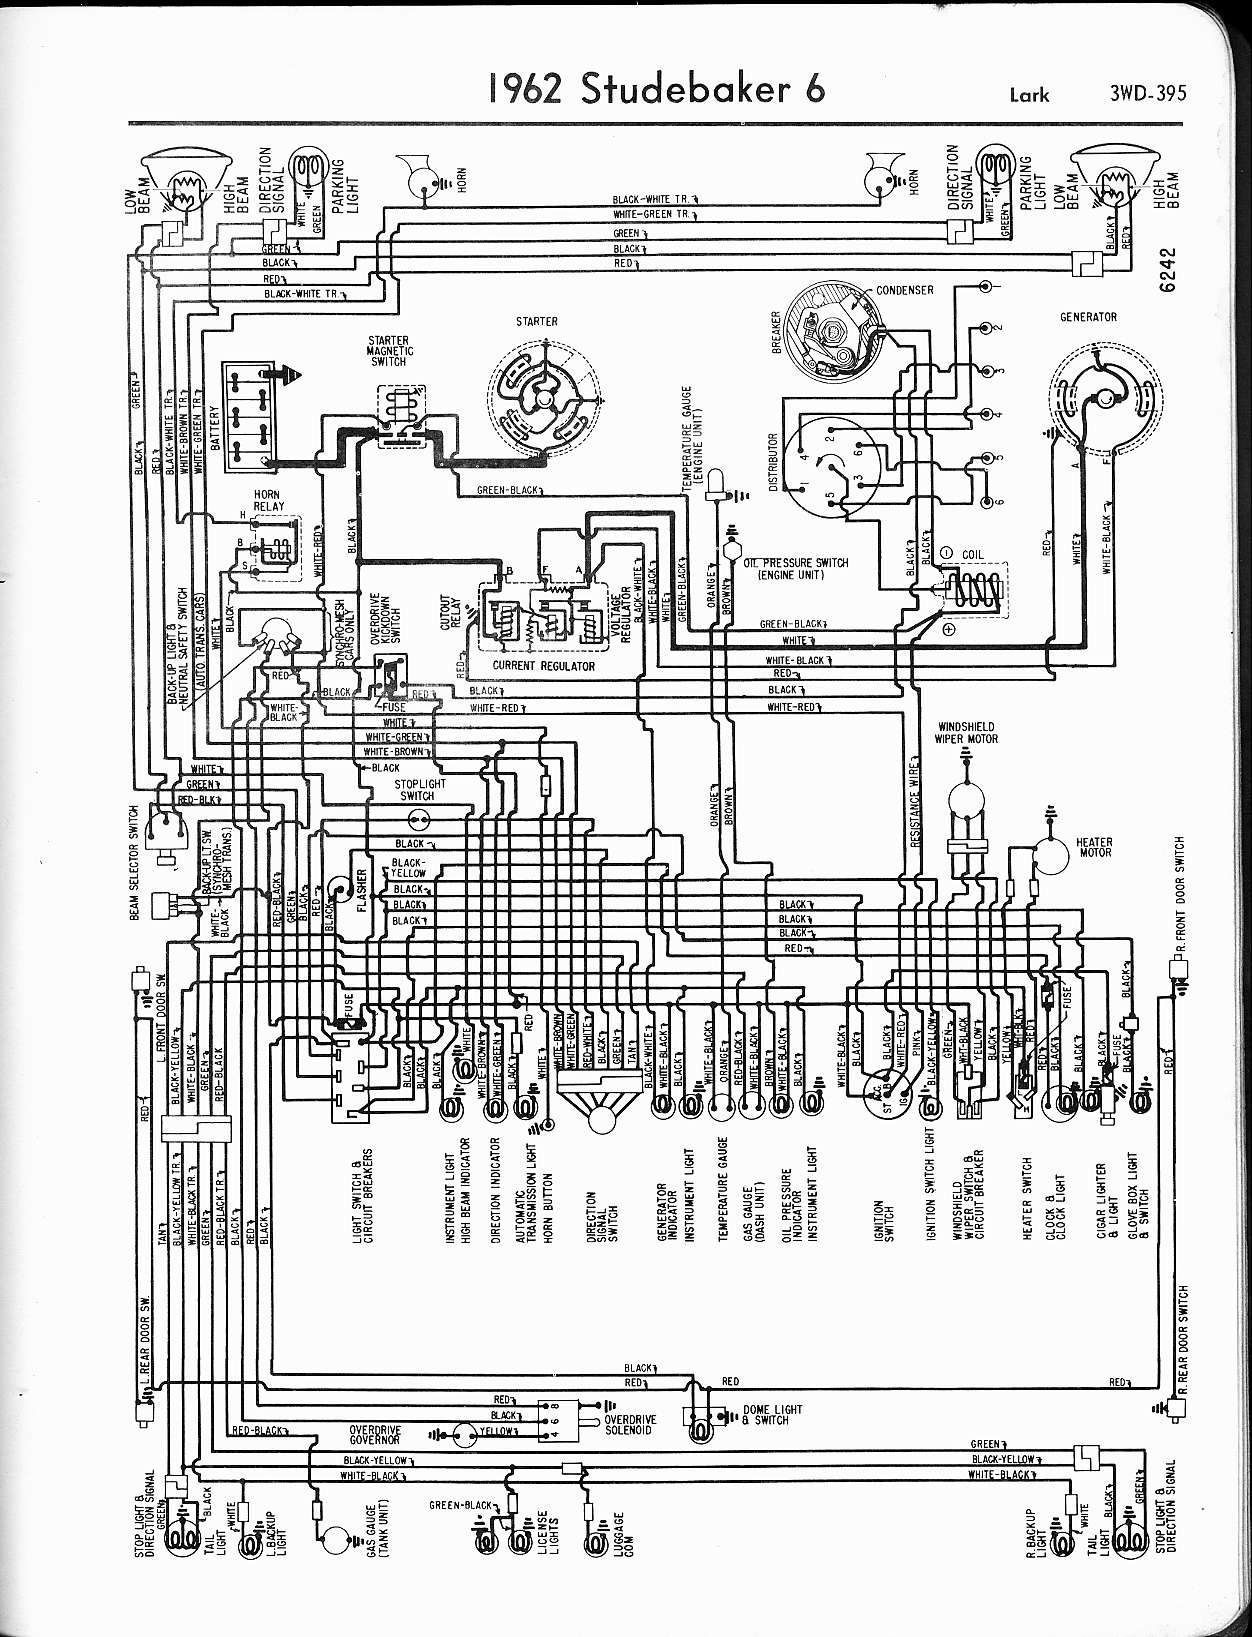 Wiring Manual PDF: 1929 Studebaker Wiring Diagram